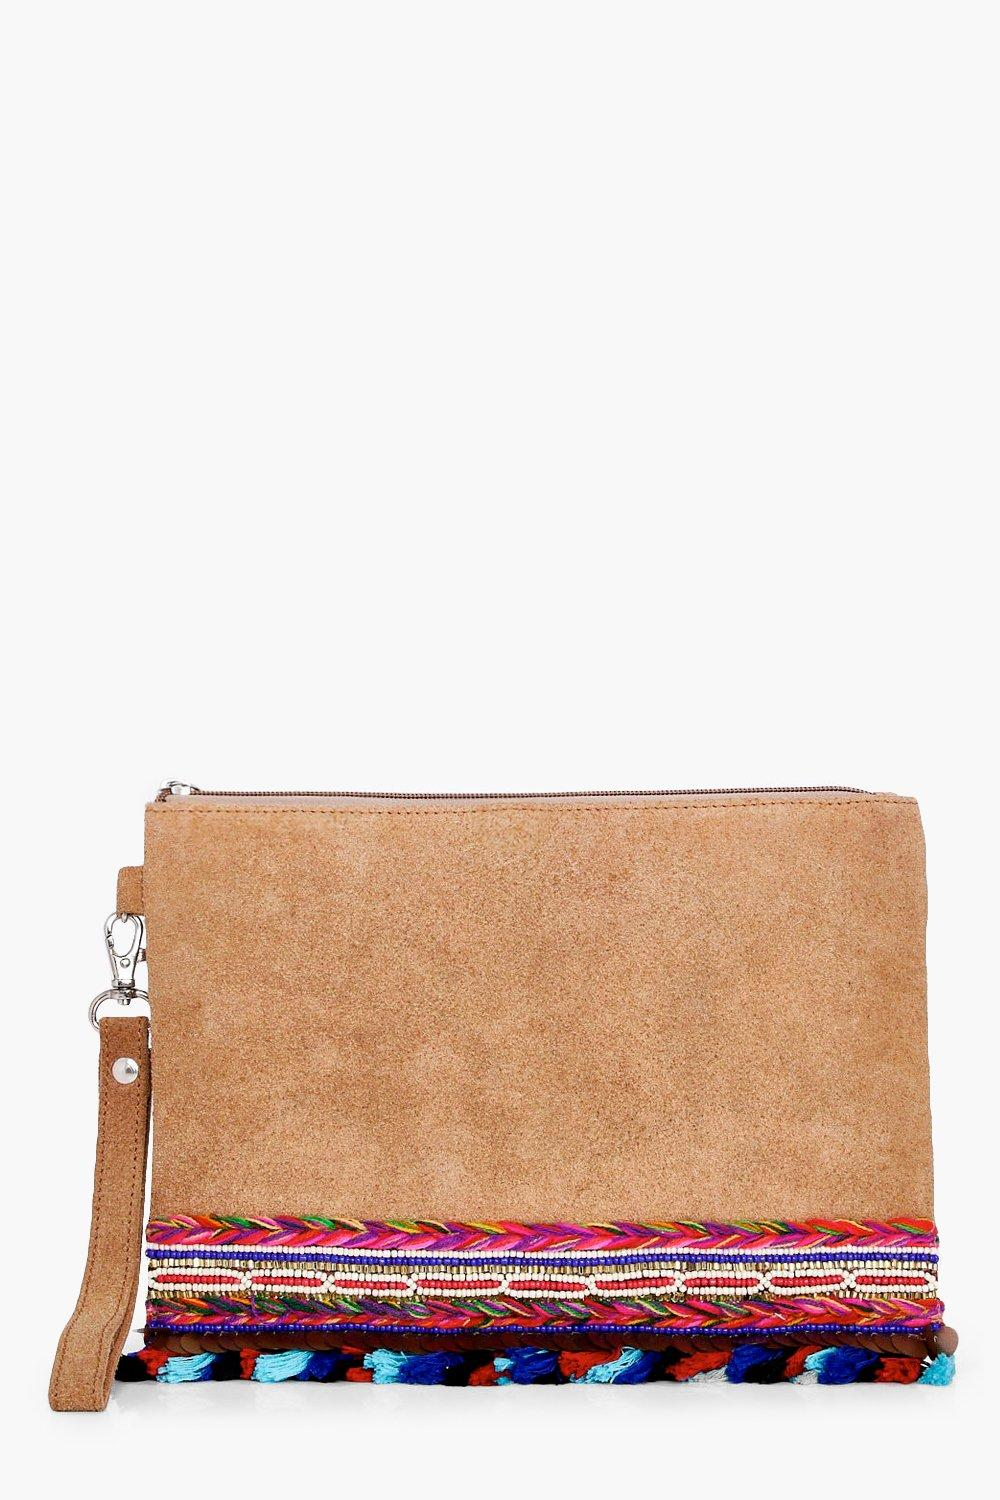 Boutique Embellished Pom Suede Clutch - tan - Bell